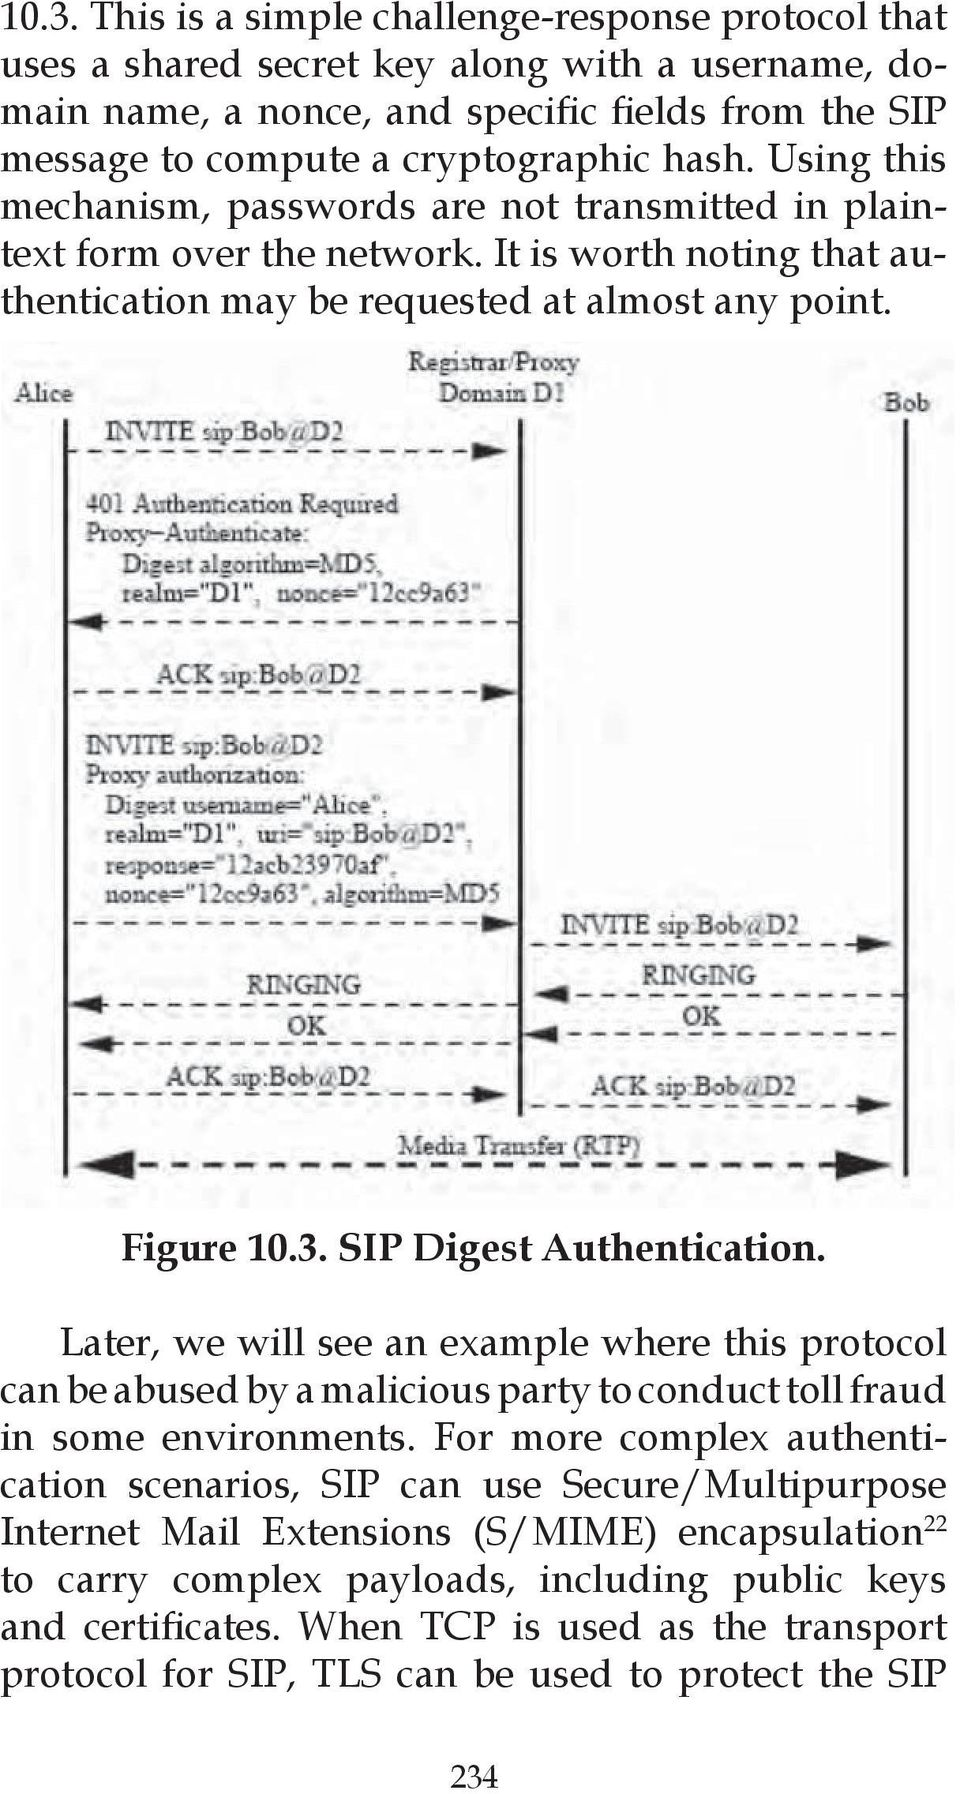 SIP Digest Authentication. Later, we will see an example where this protocol can be abused by a malicious party to conduct toll fraud in some environments.